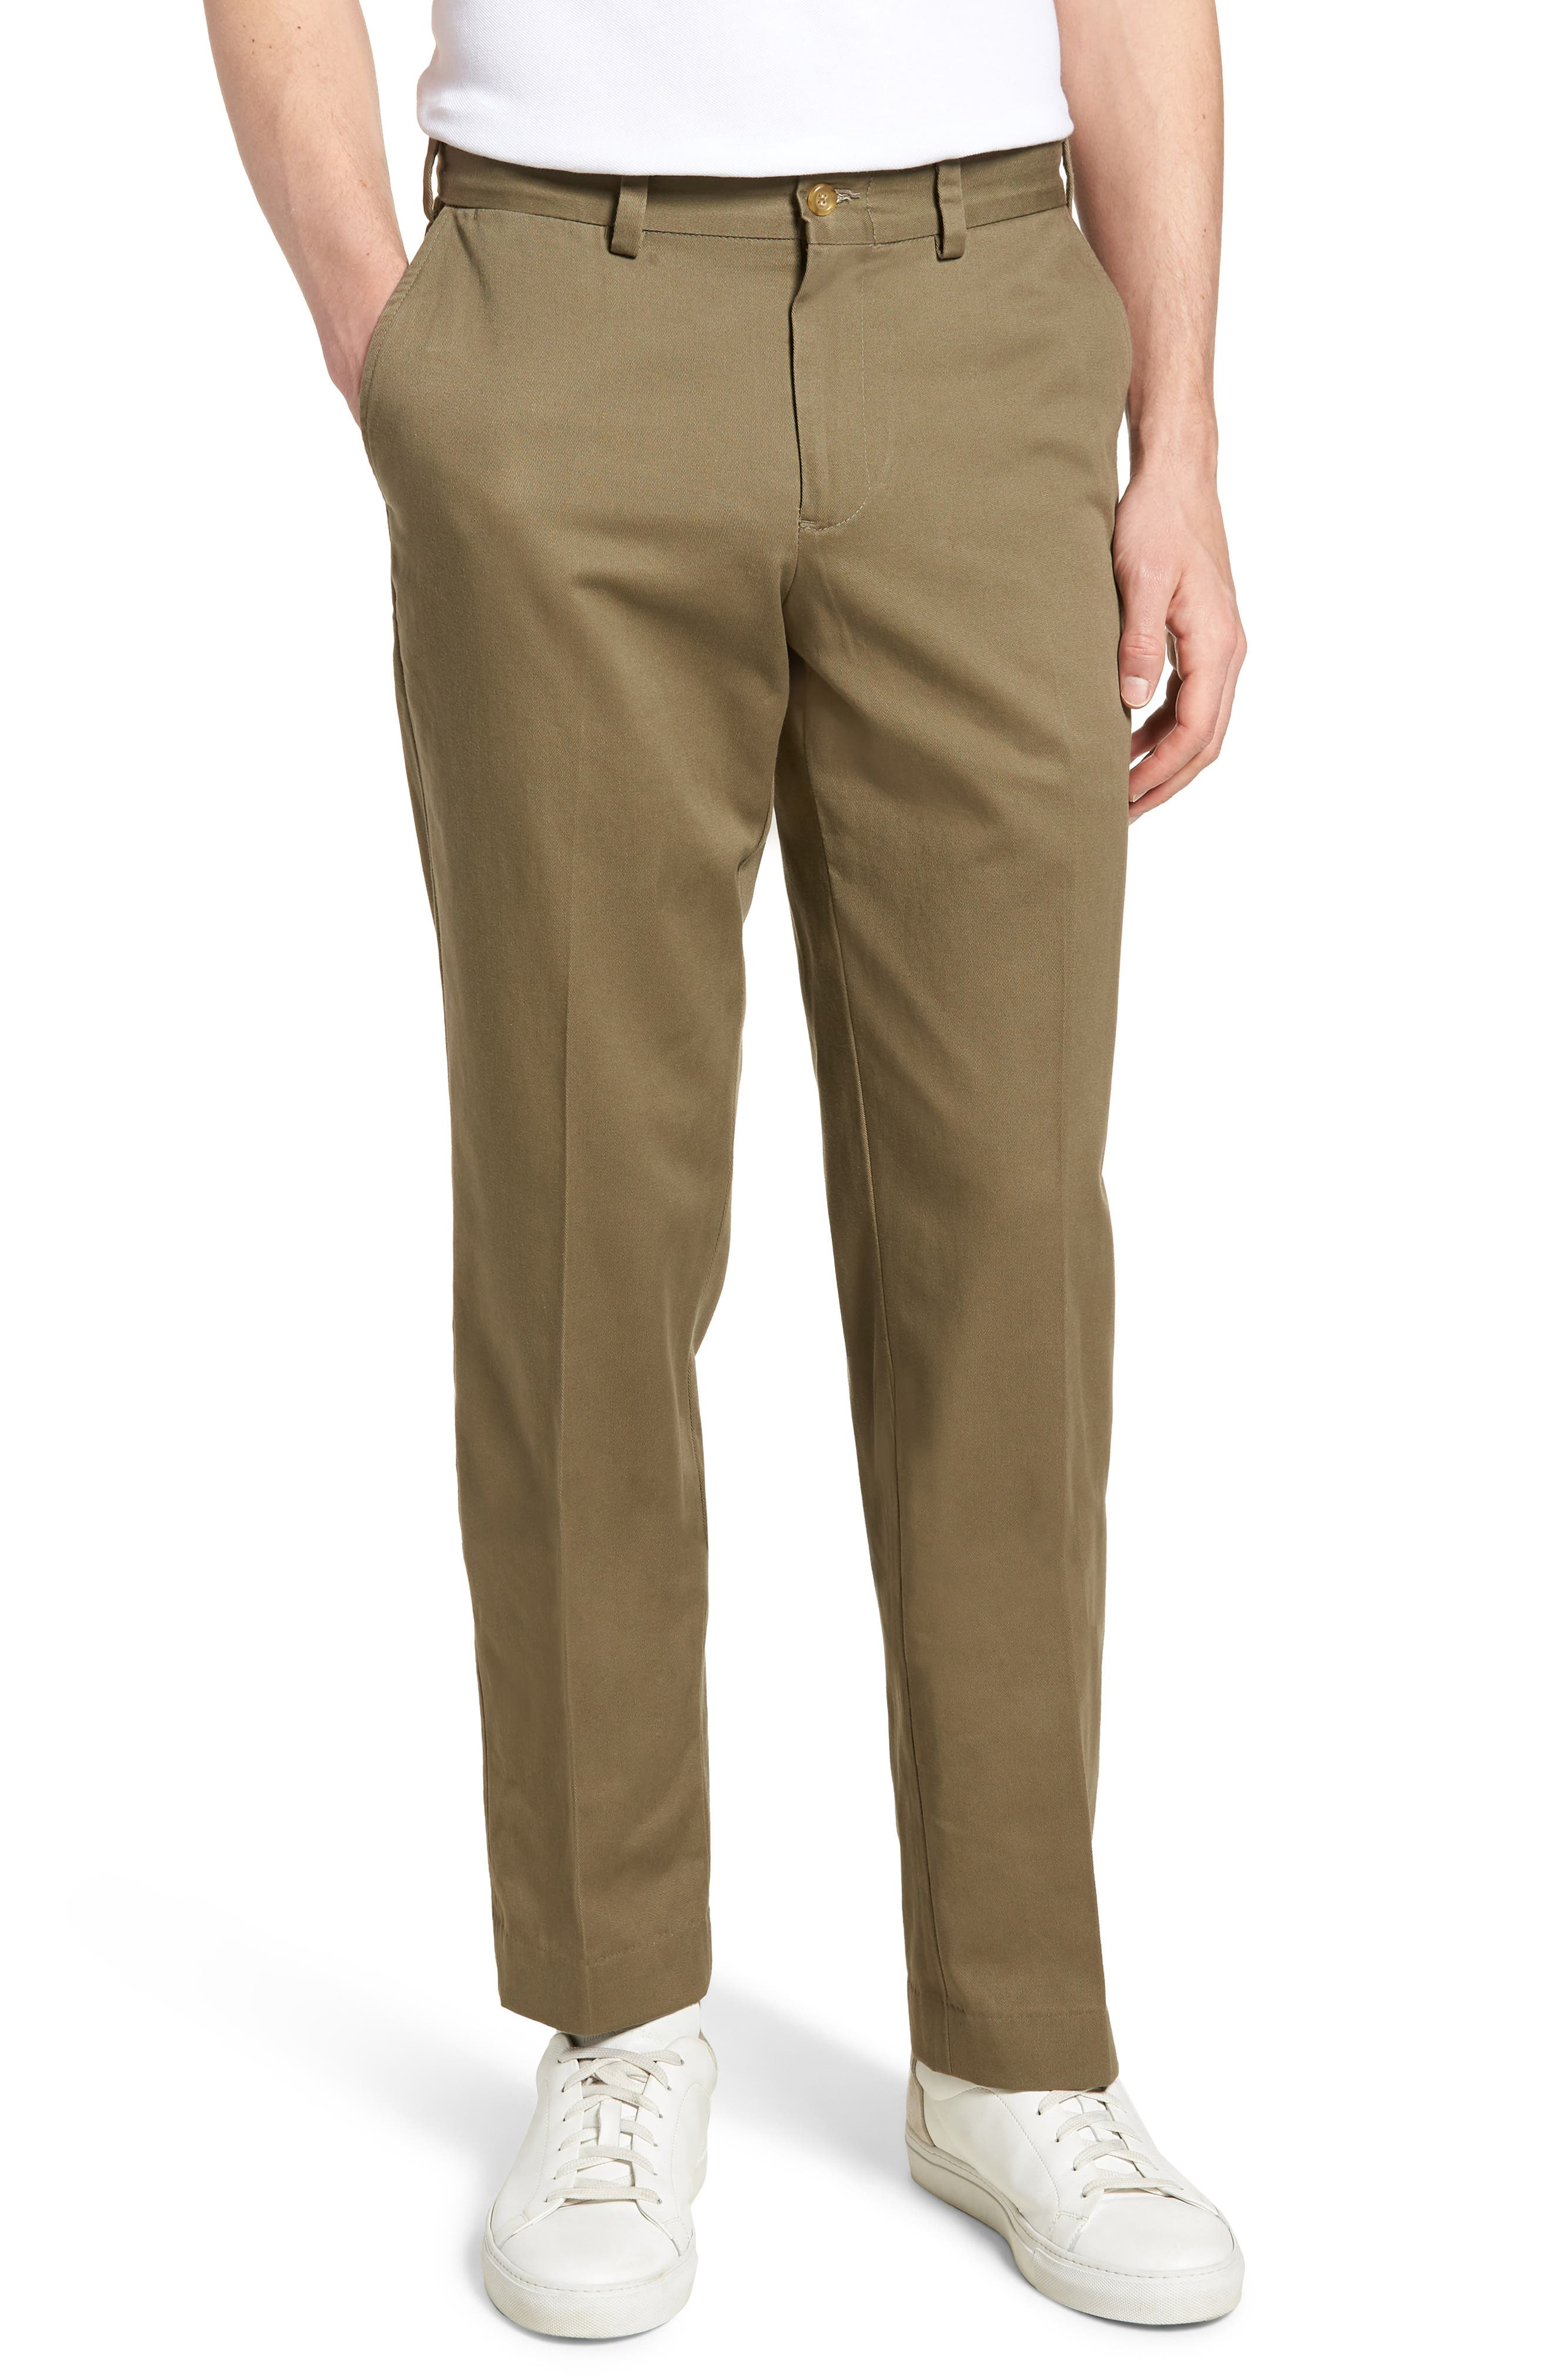 M3 Straight Fit Flat Front Vintage Twill Pants,                             Main thumbnail 1, color,                             330